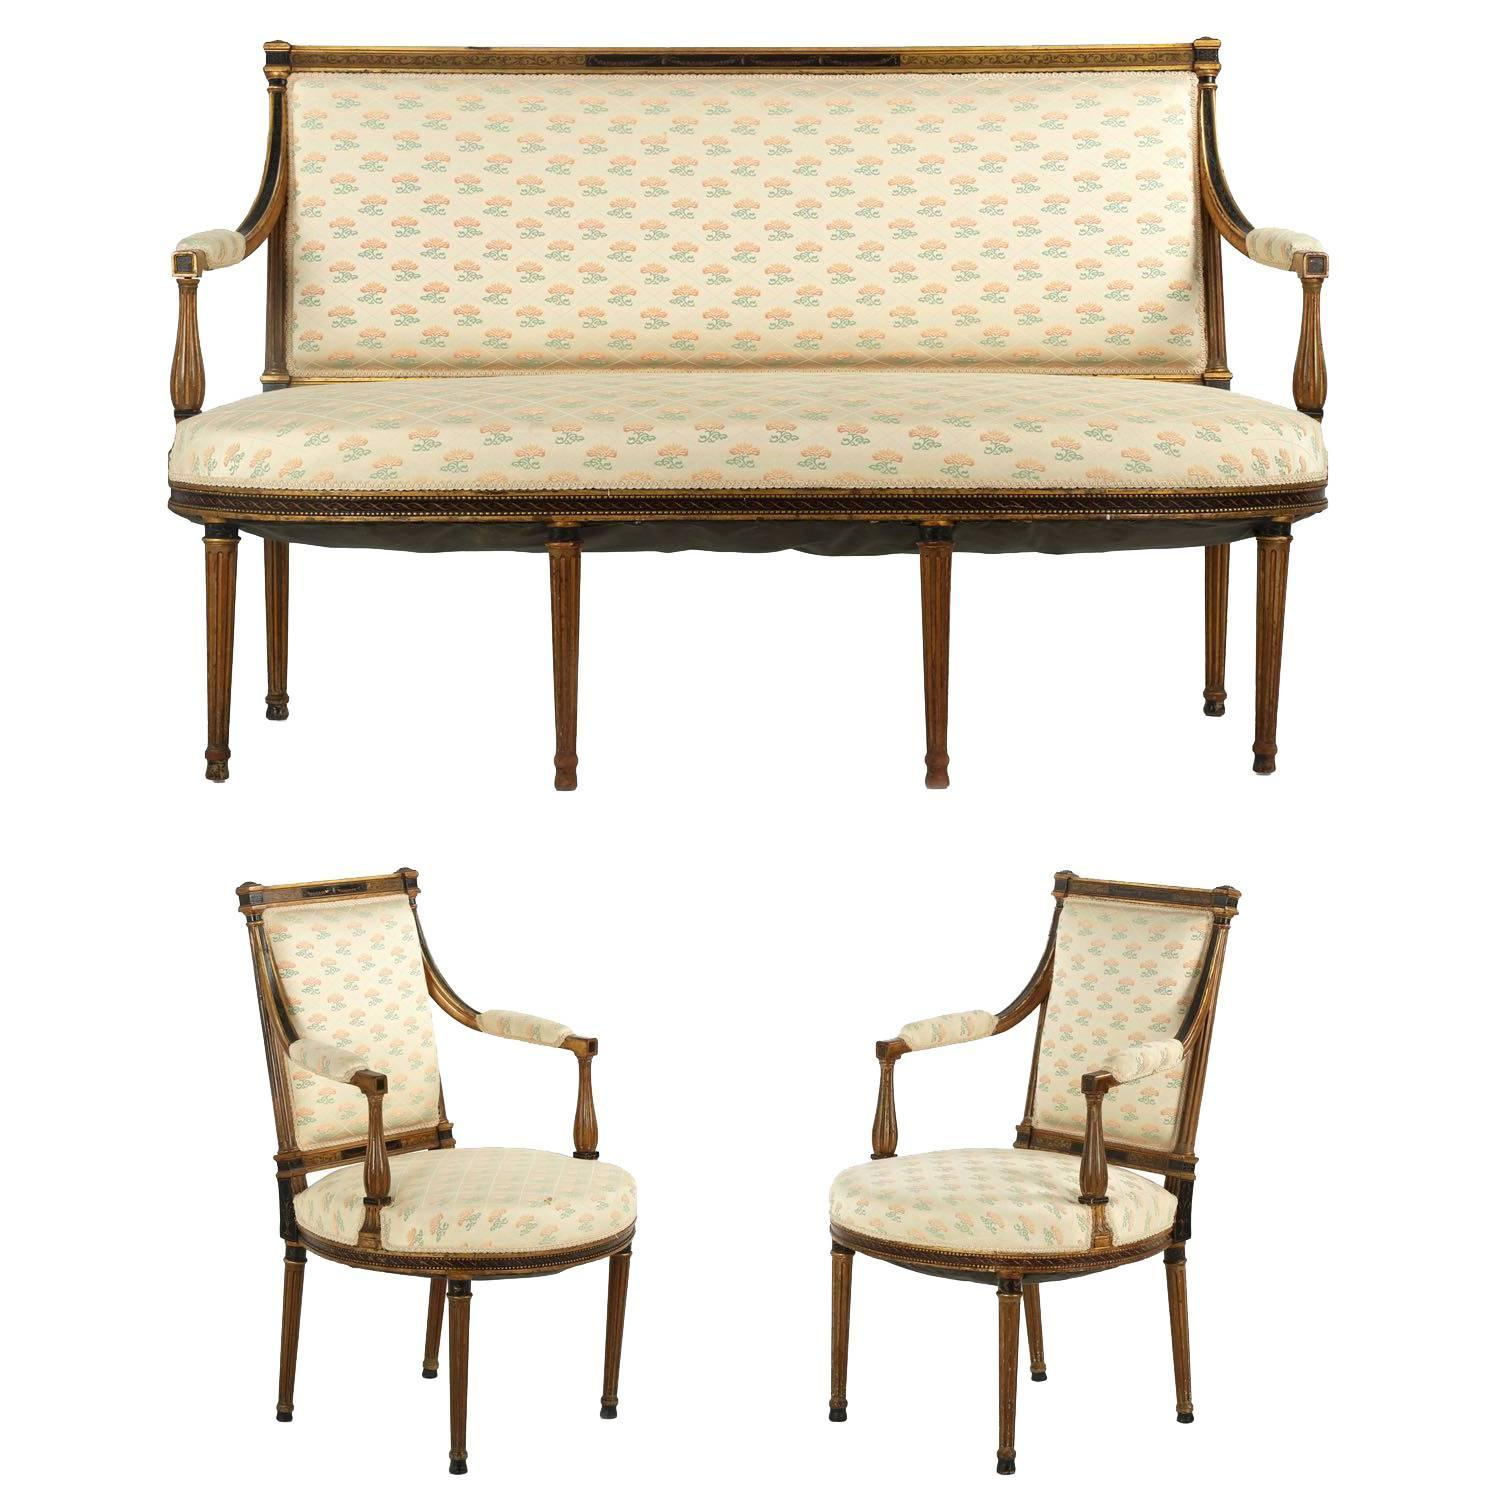 French Neoclassical Salon Suite with Settee and Pair of Armchairs